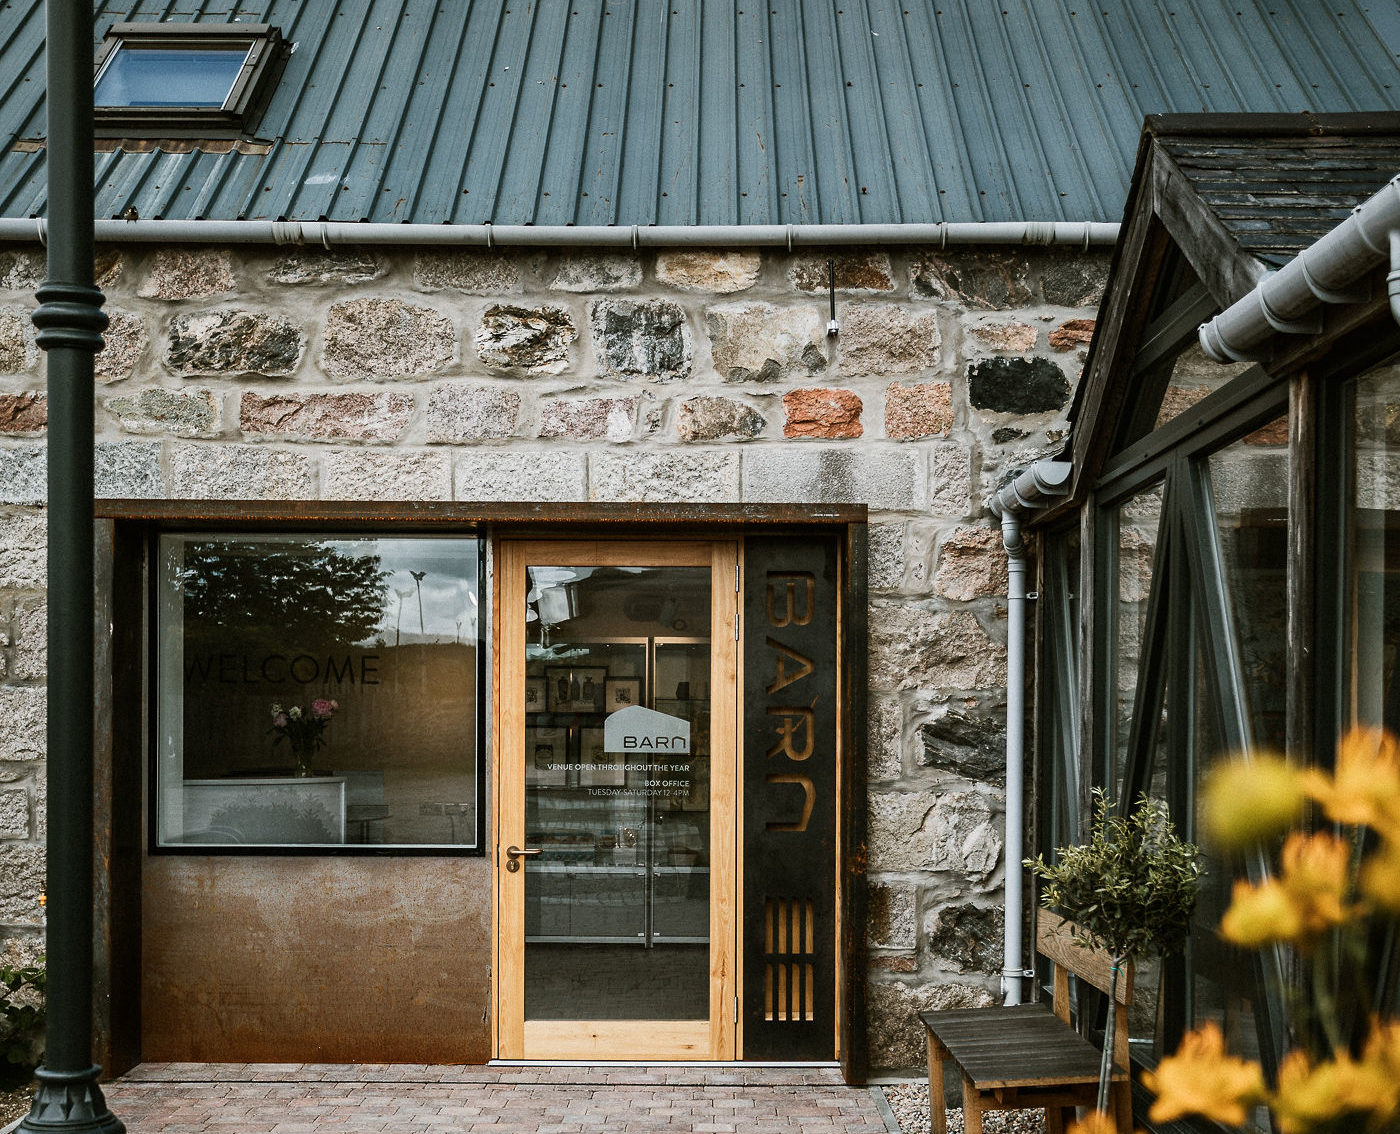 The Barn arts centre in Banchory